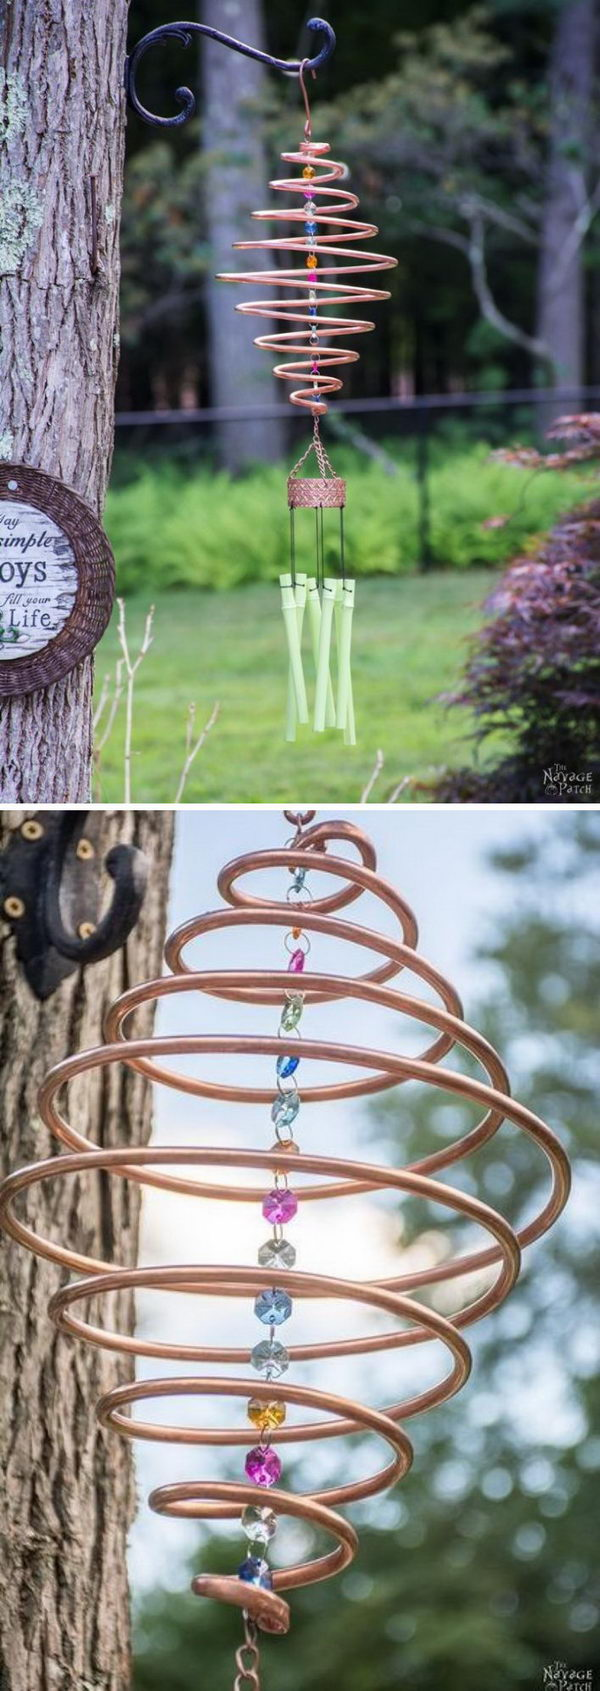 Coiled Copper Wind Chimes.